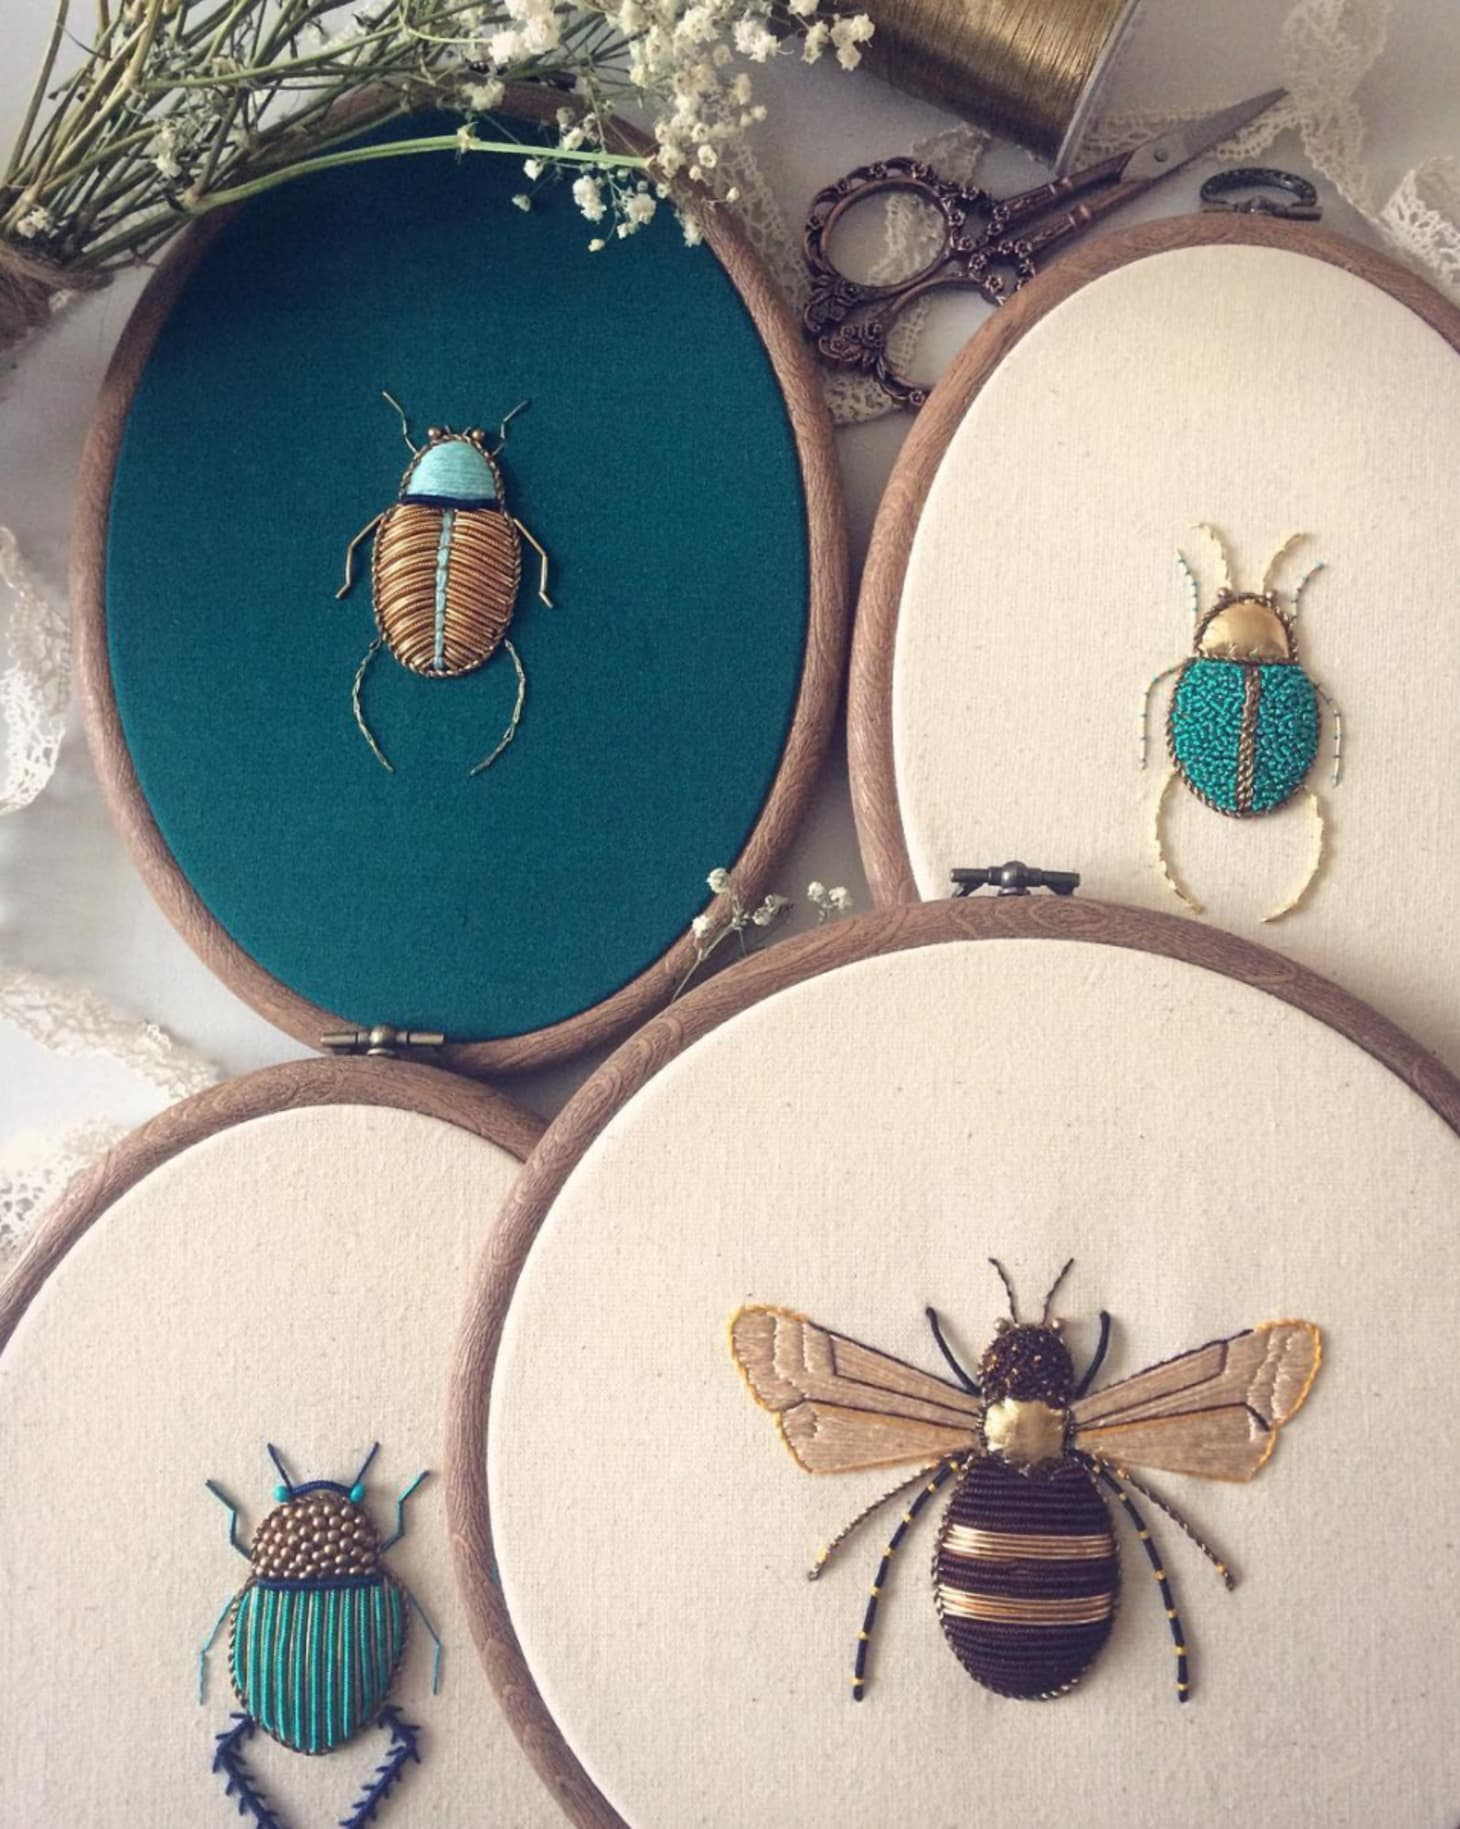 Stitch, Please! 9 Embroiderers Serving Up Instagram Eye